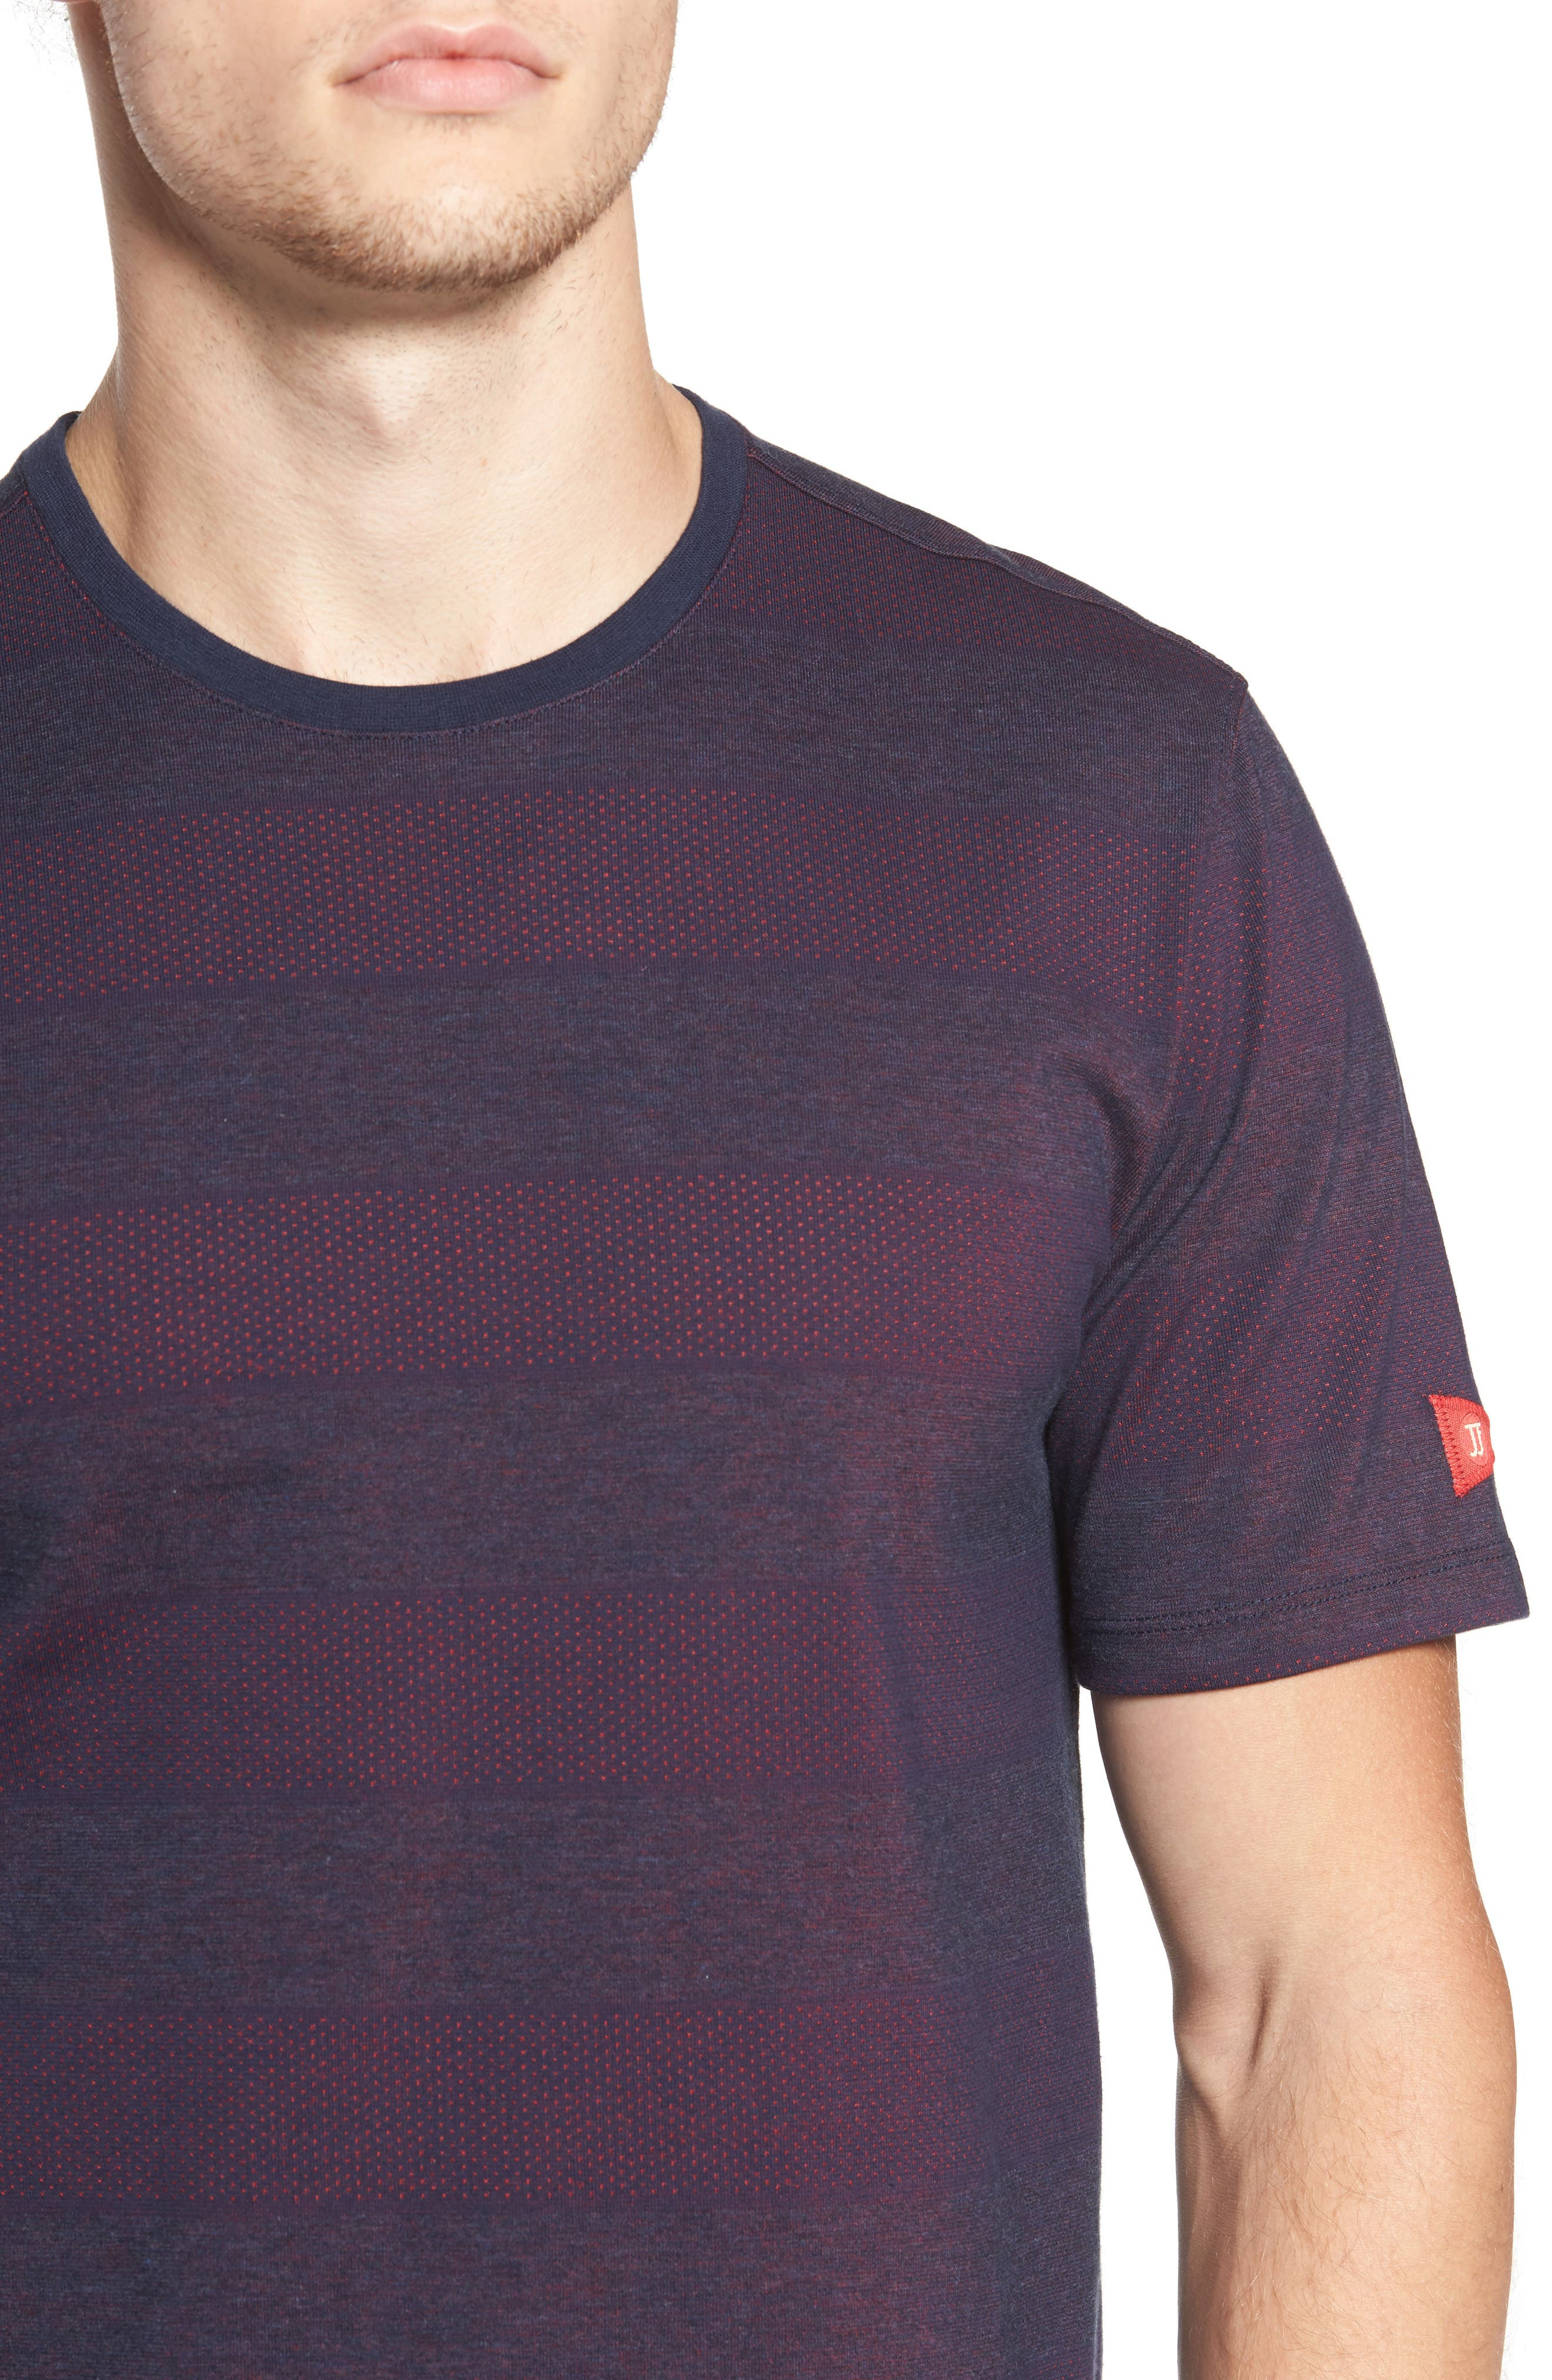 Regatta Dri-FIT T-Shirt,                             Alternate thumbnail 8, color,